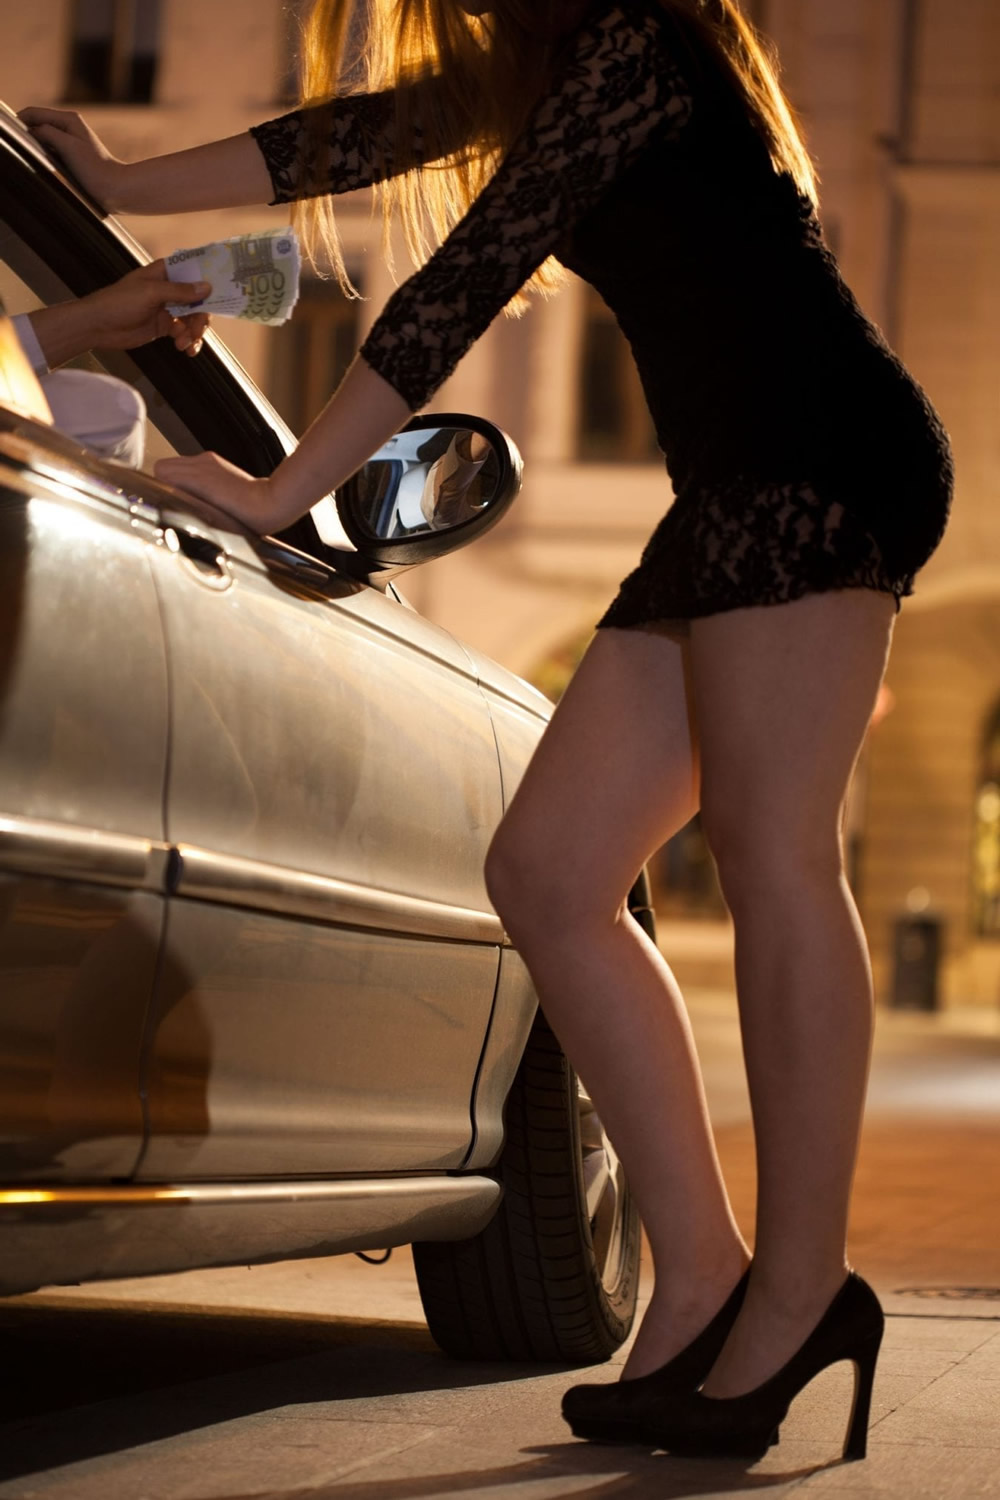 Prostituta in Francia